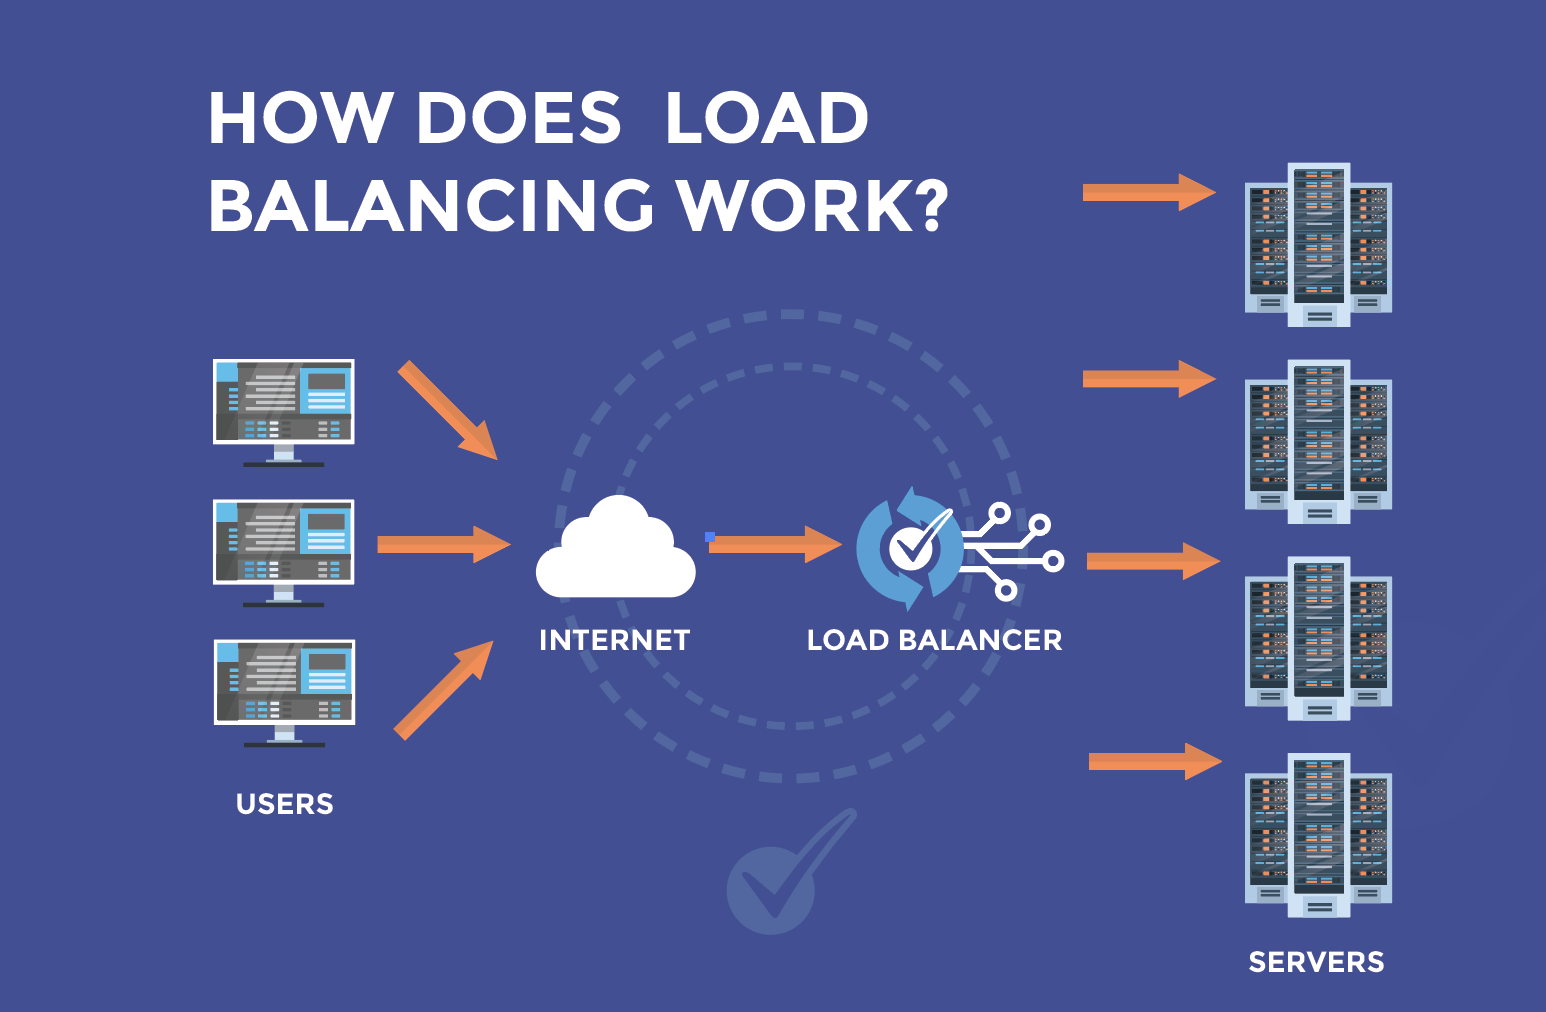 How does load balancing work?